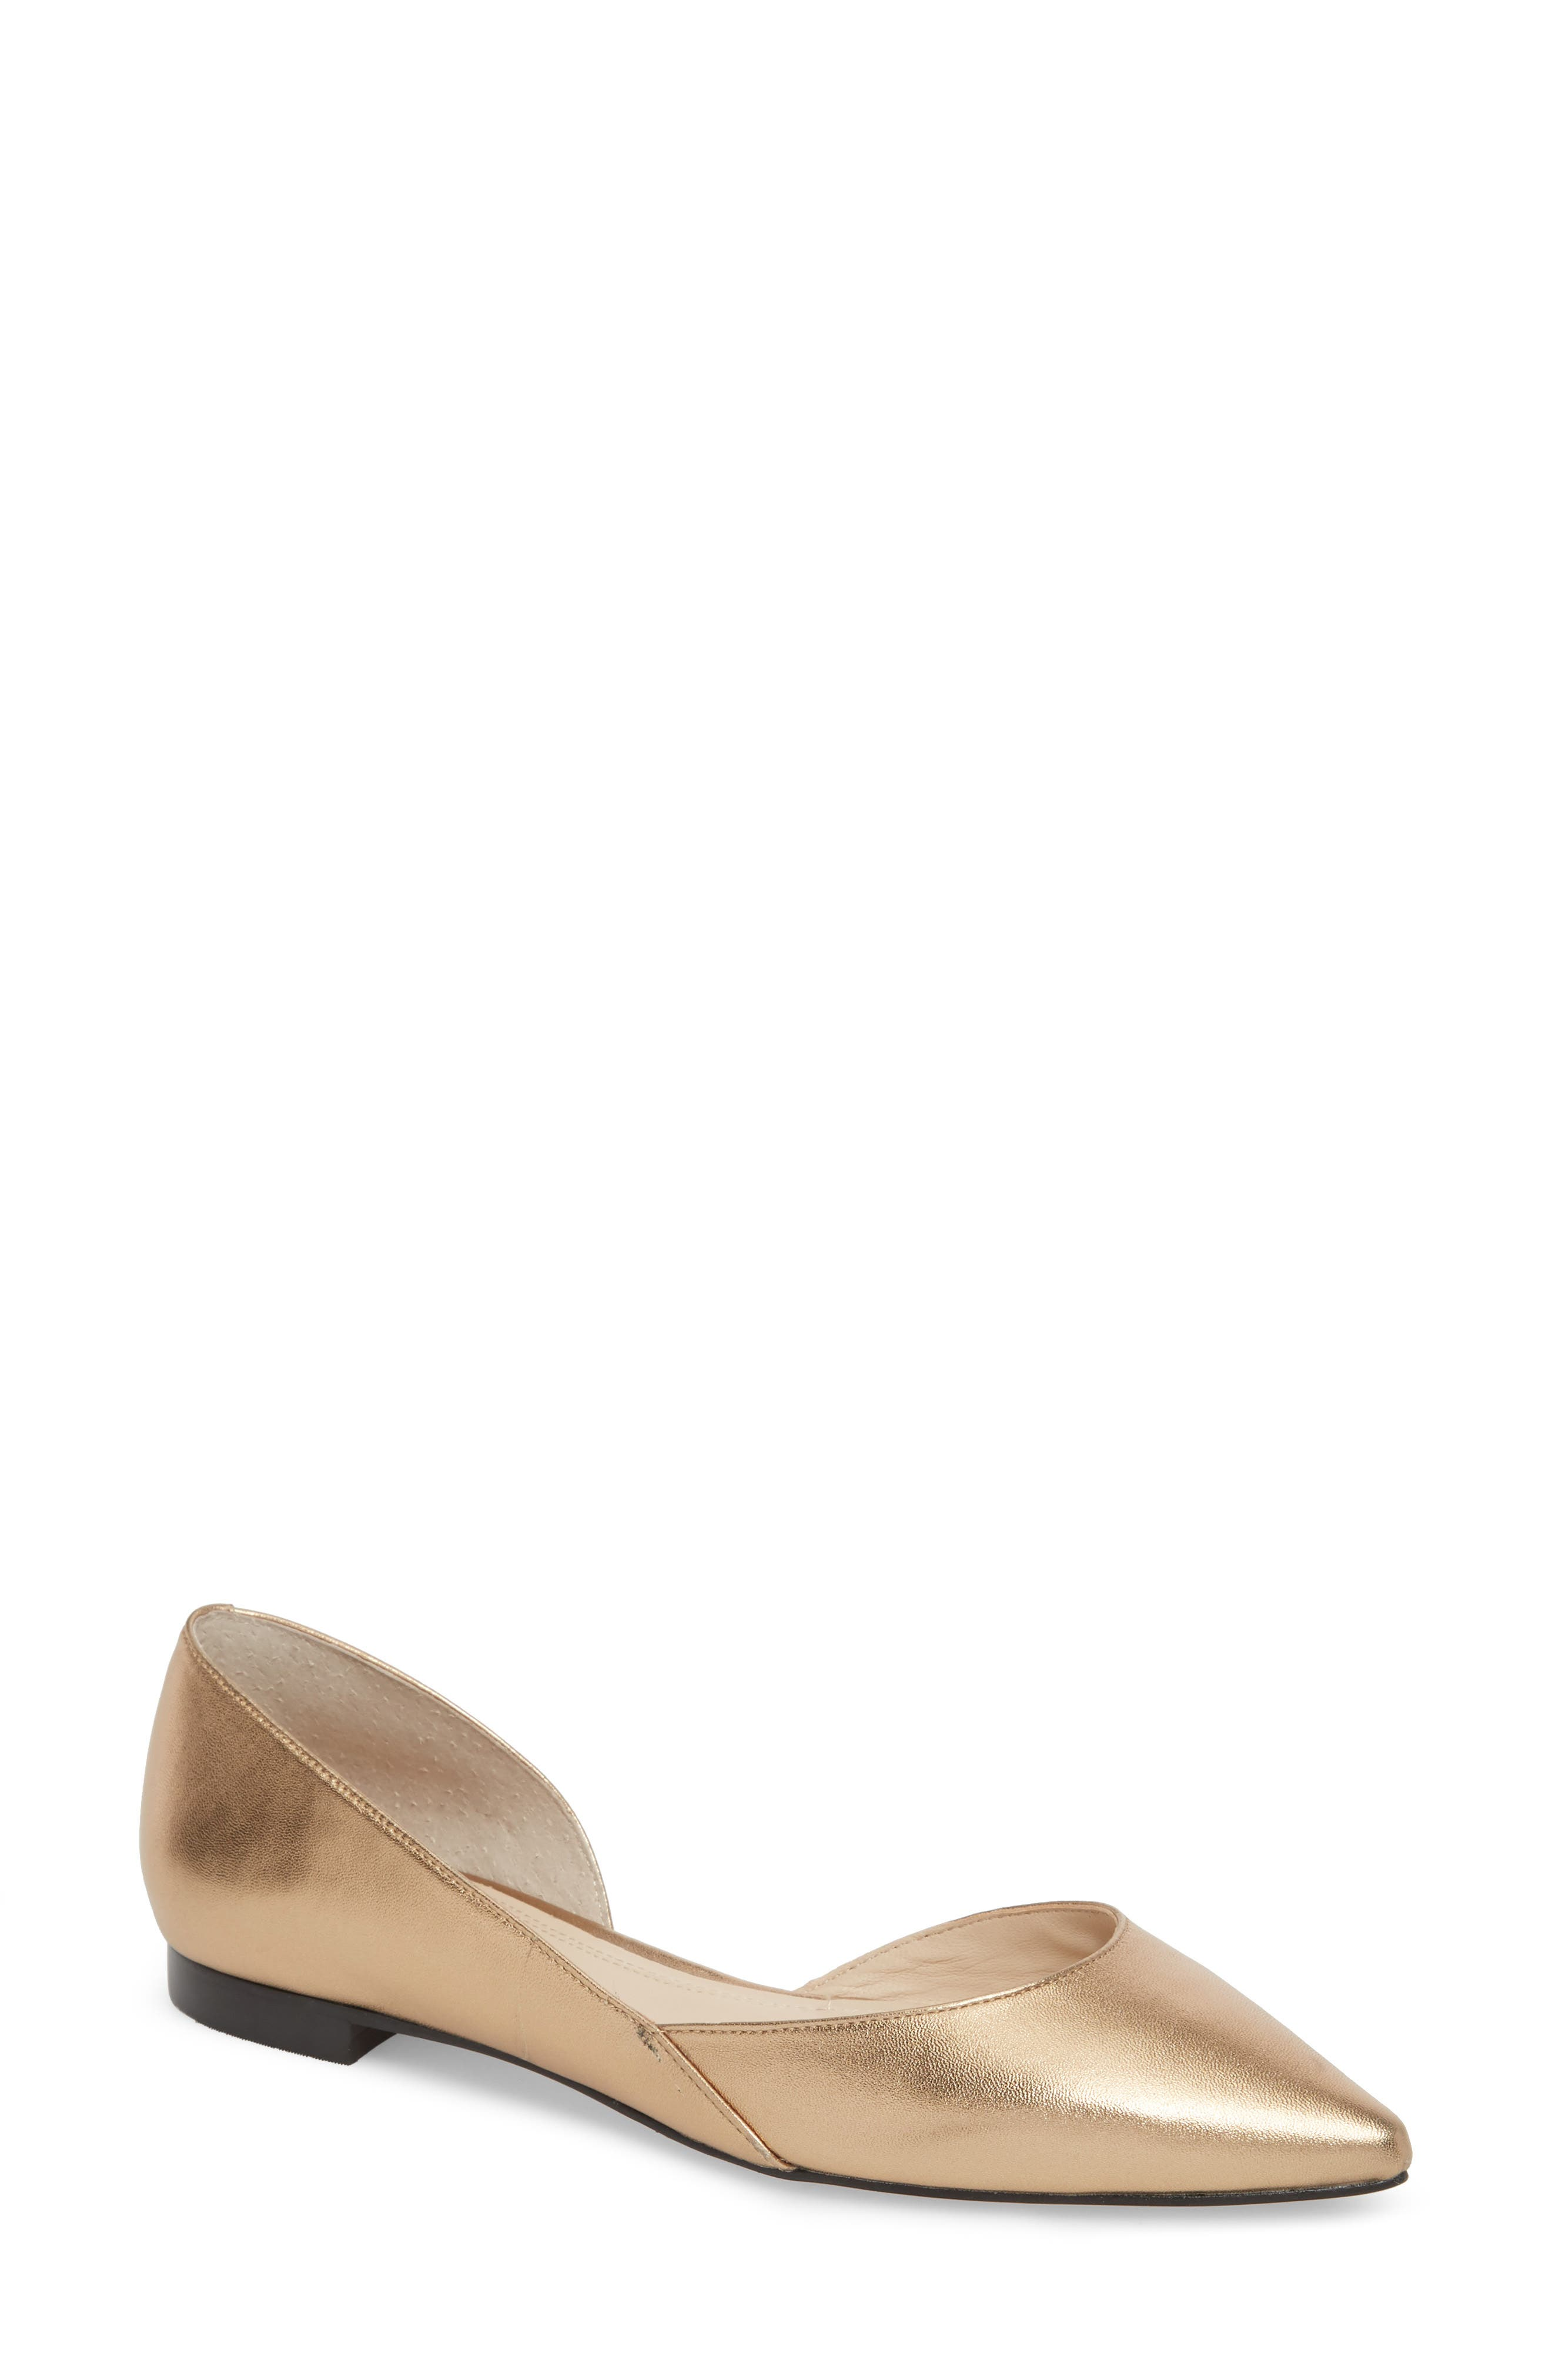 'Sunny' Half d'Orsay Flat,                         Main,                         color, Gold Leather